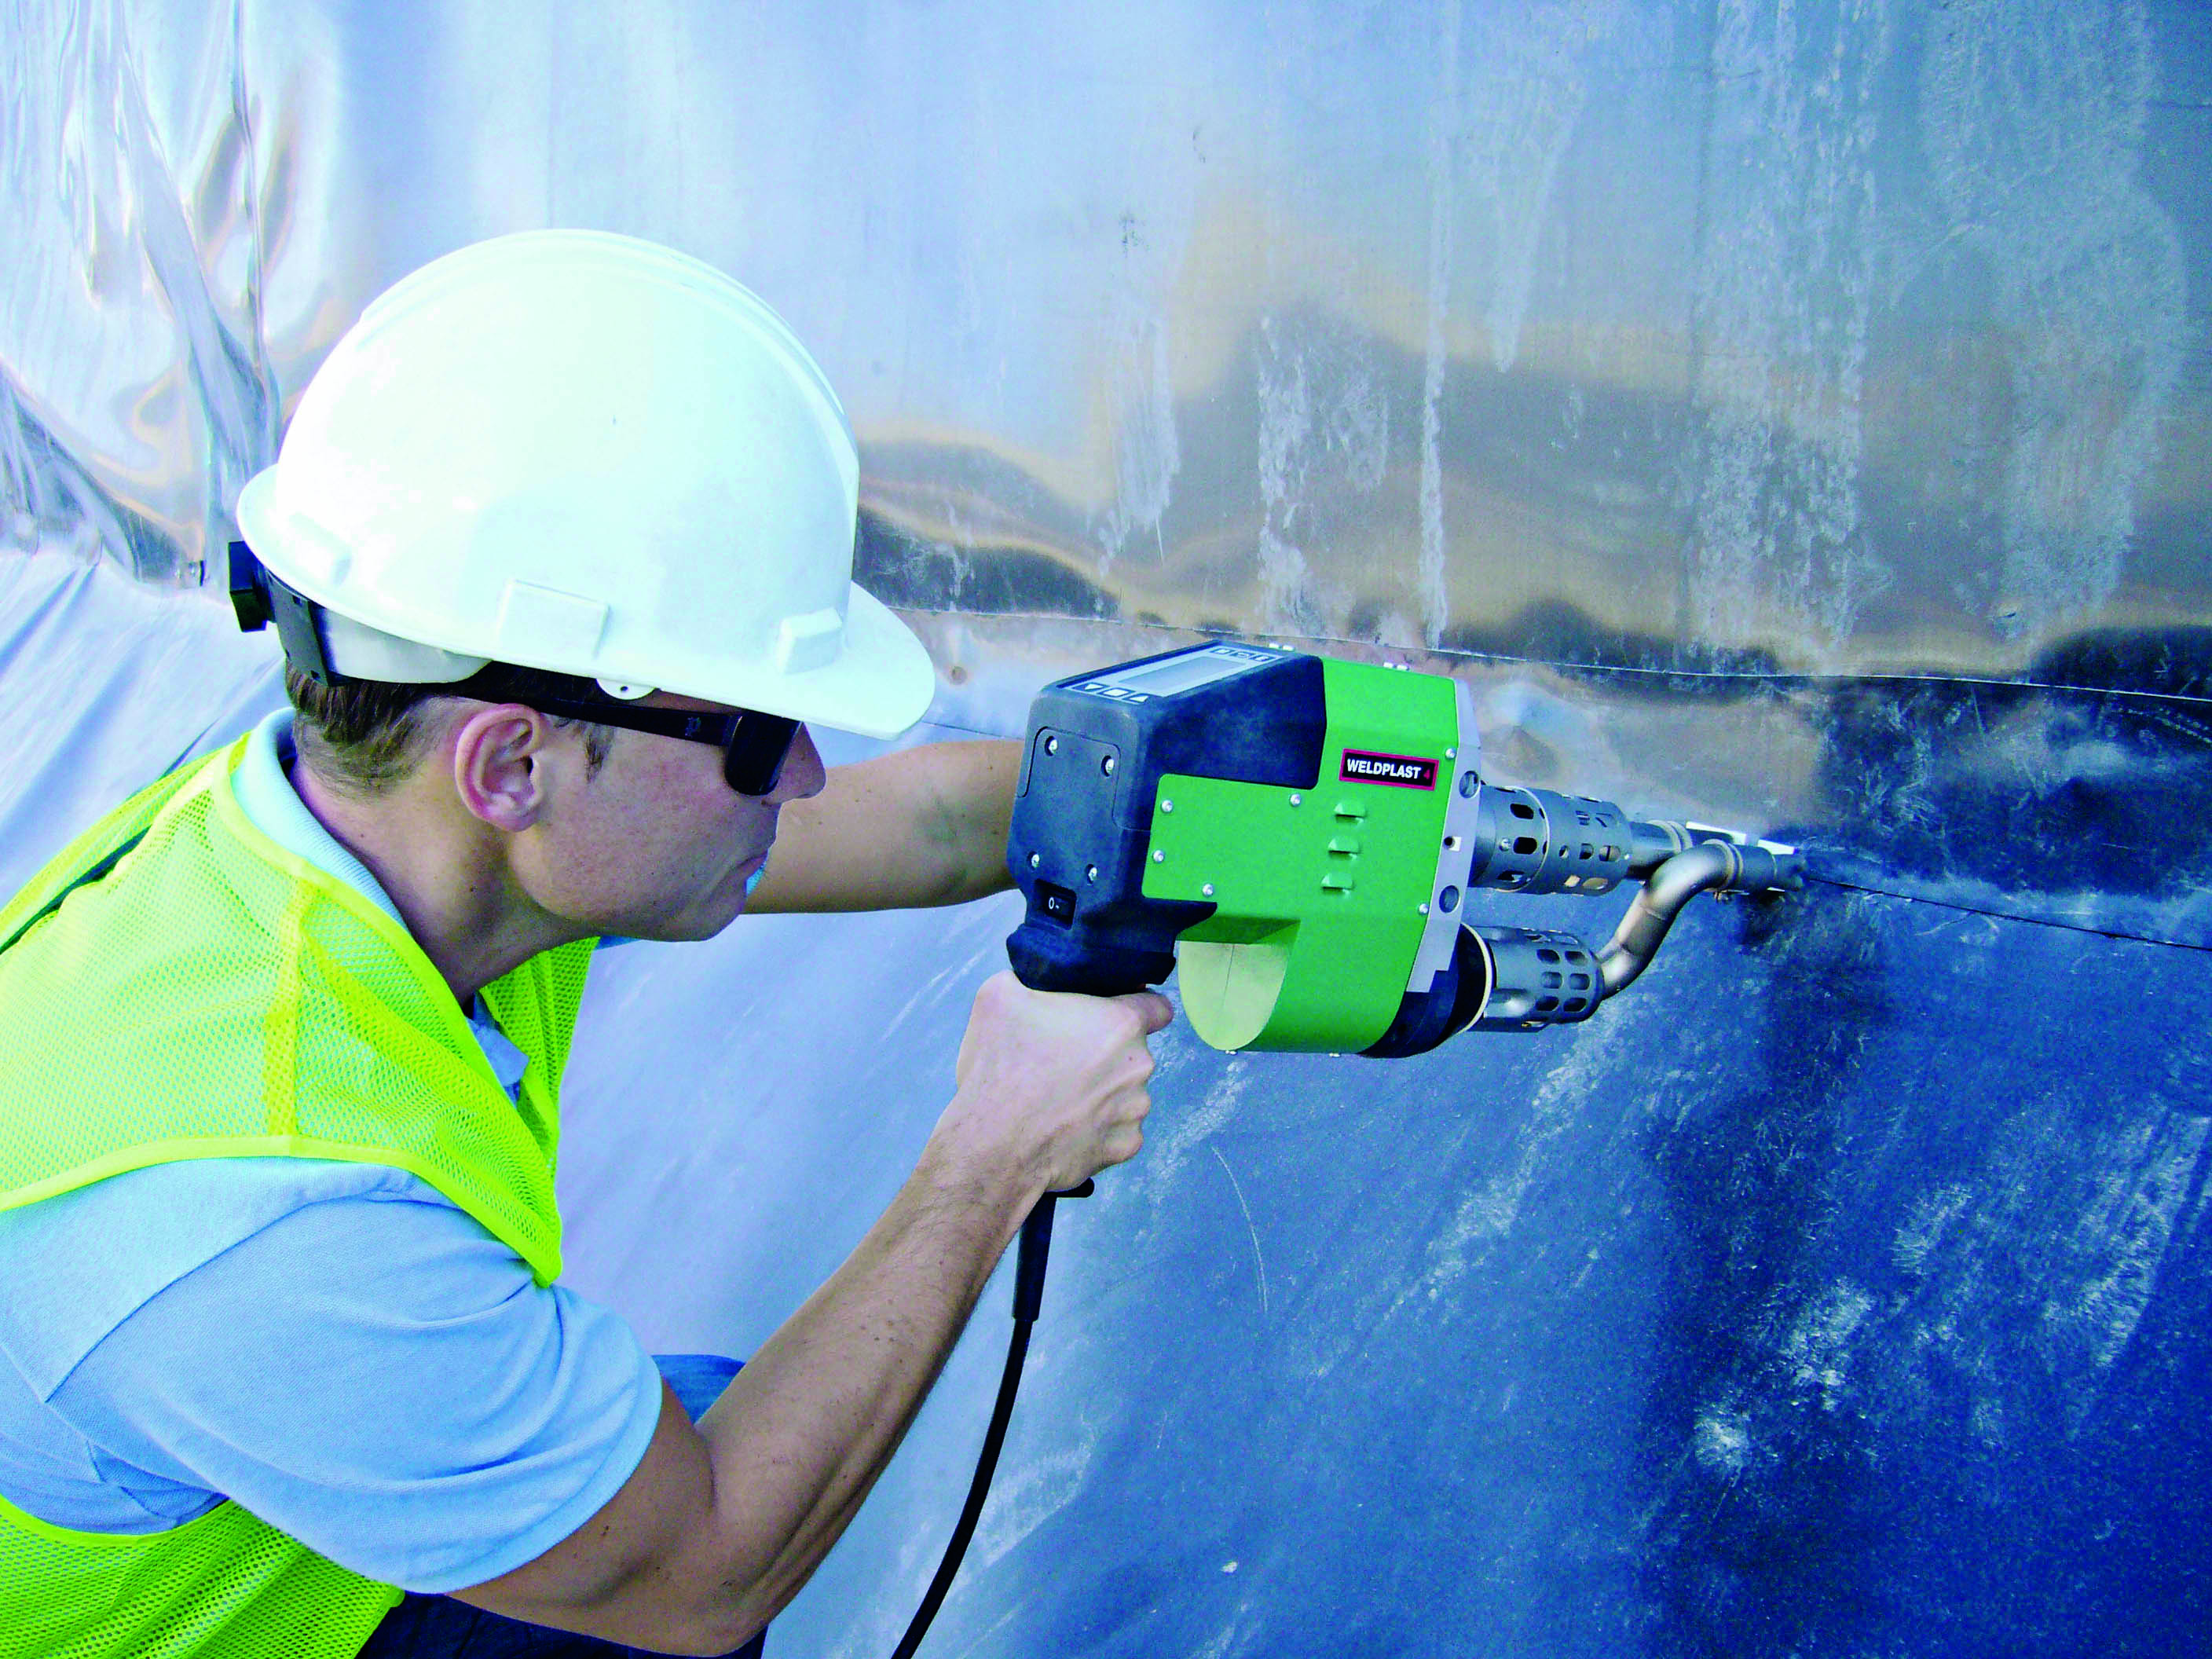 An engineer uses plastic welding equipment to join a geomembrane lining